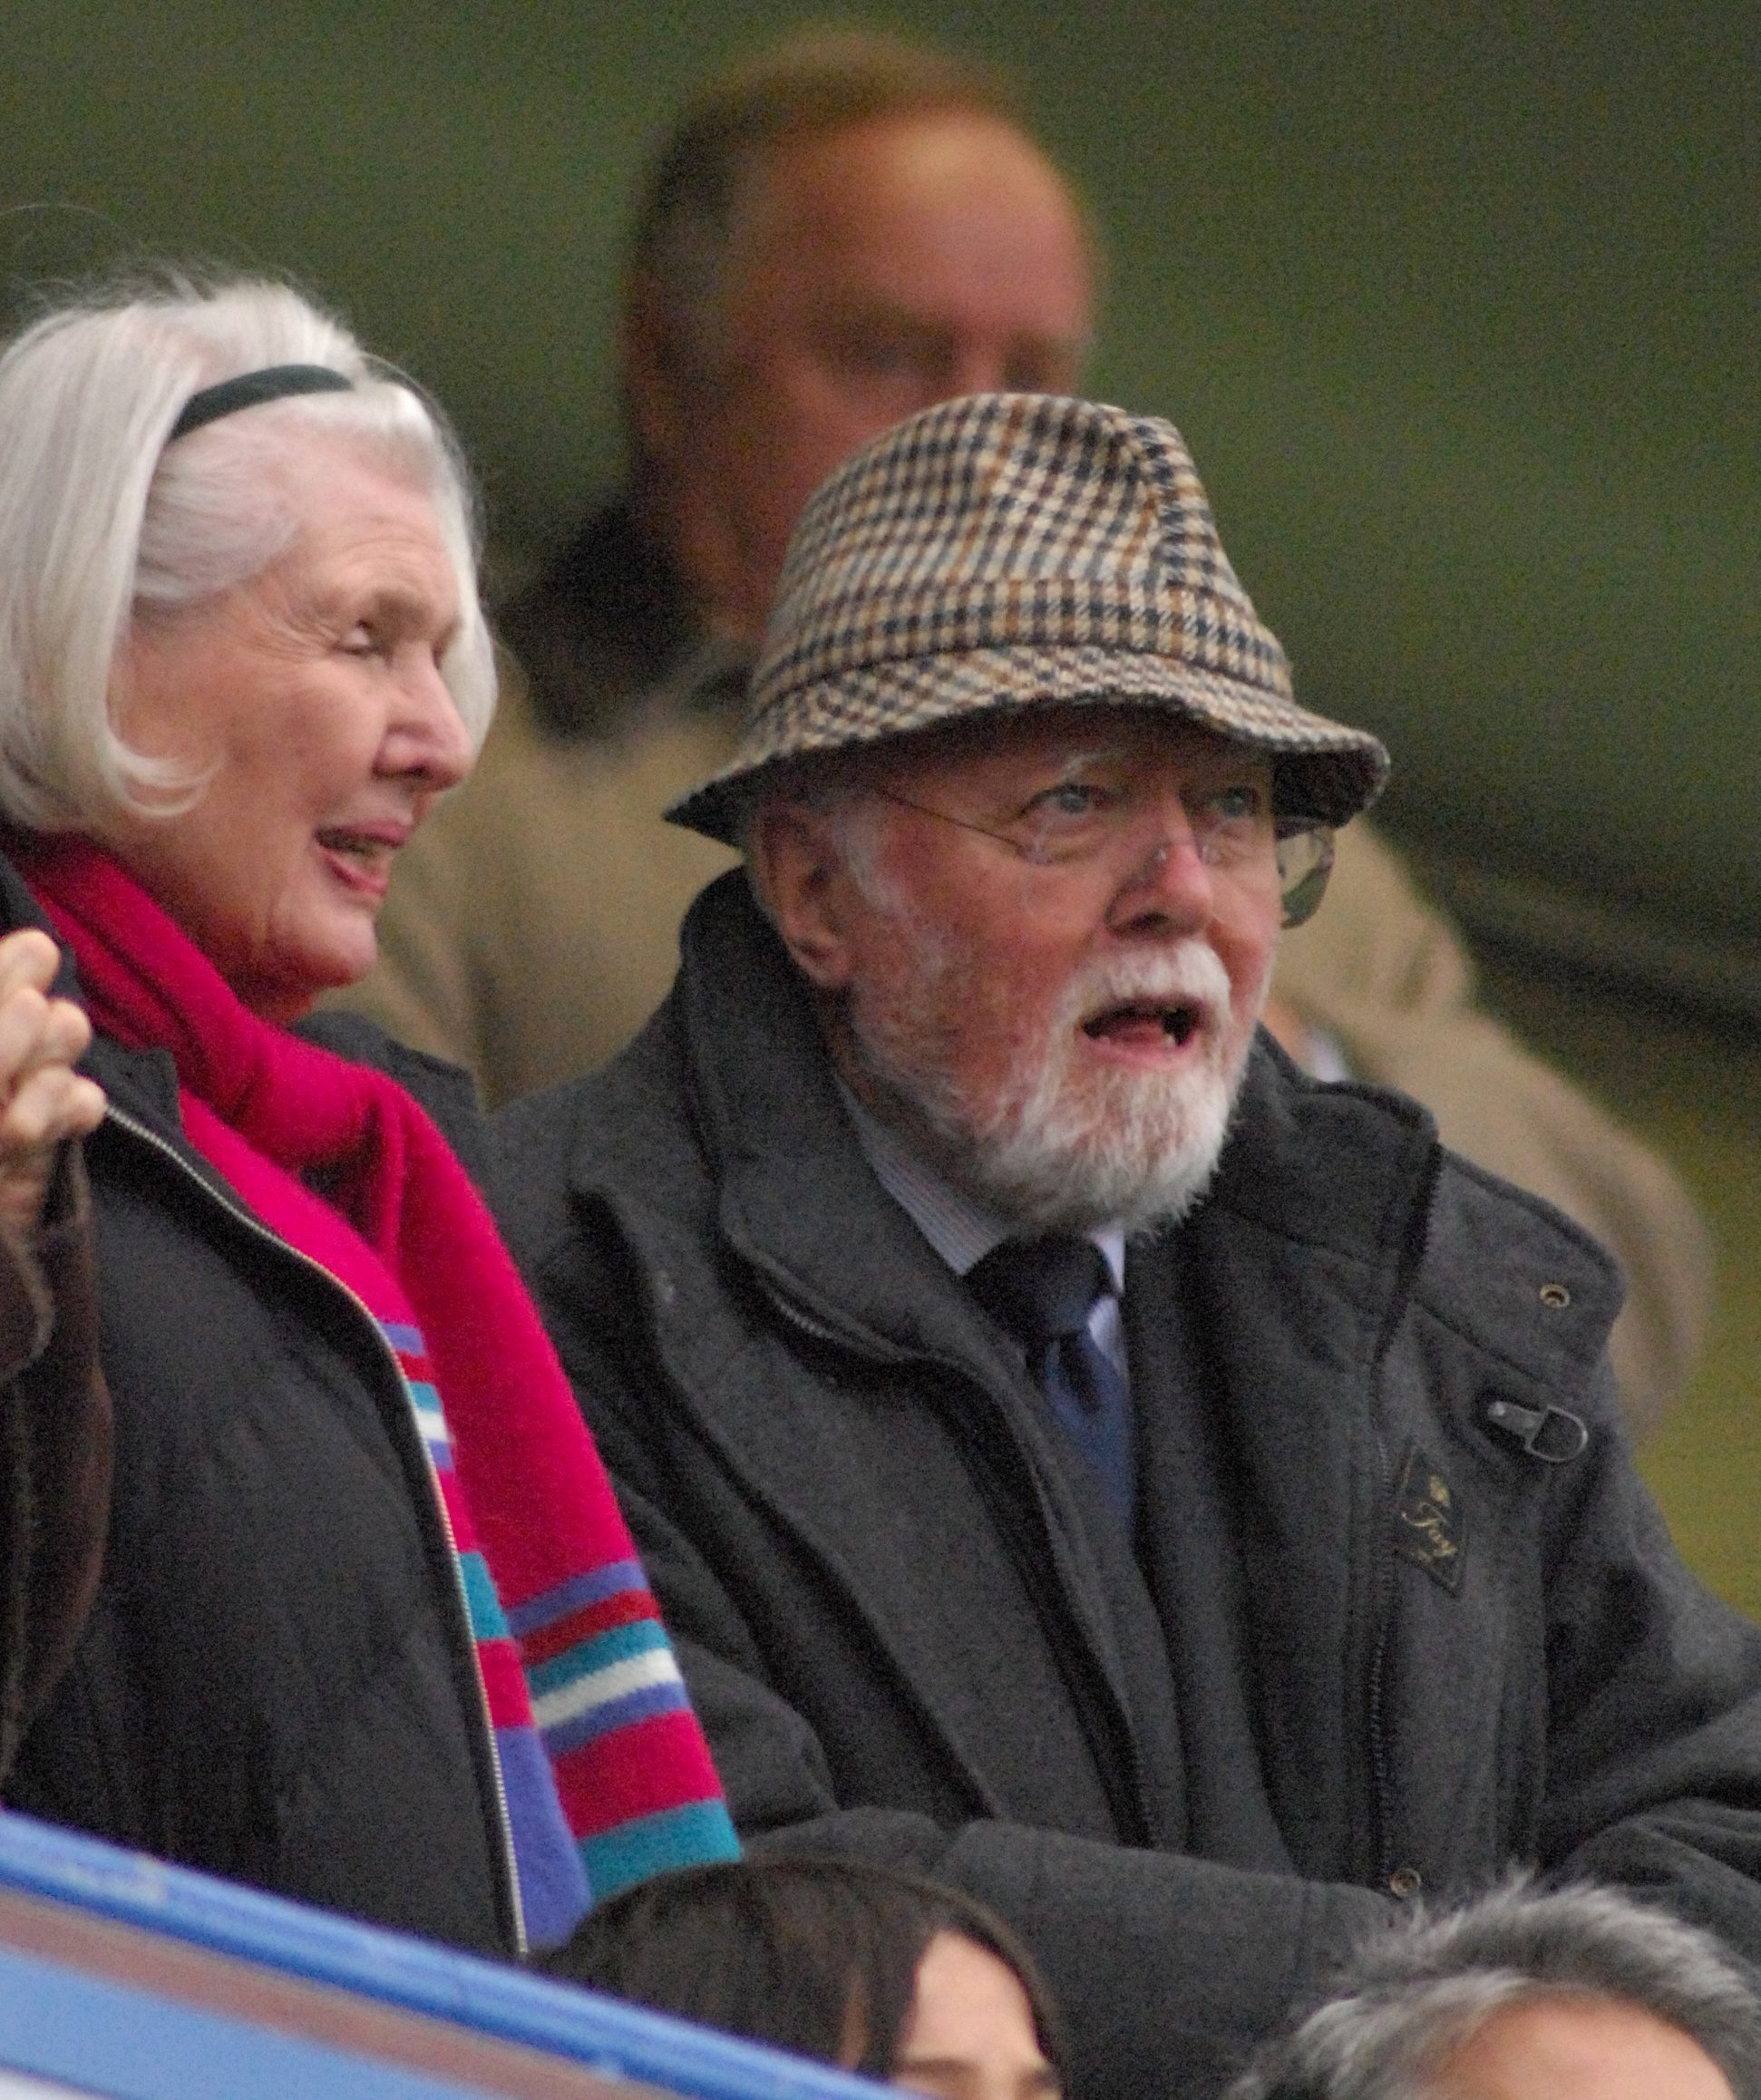 Richard Attenborough at Stamford Bridge for  Chelsea v Wigan Athletic, 2007.